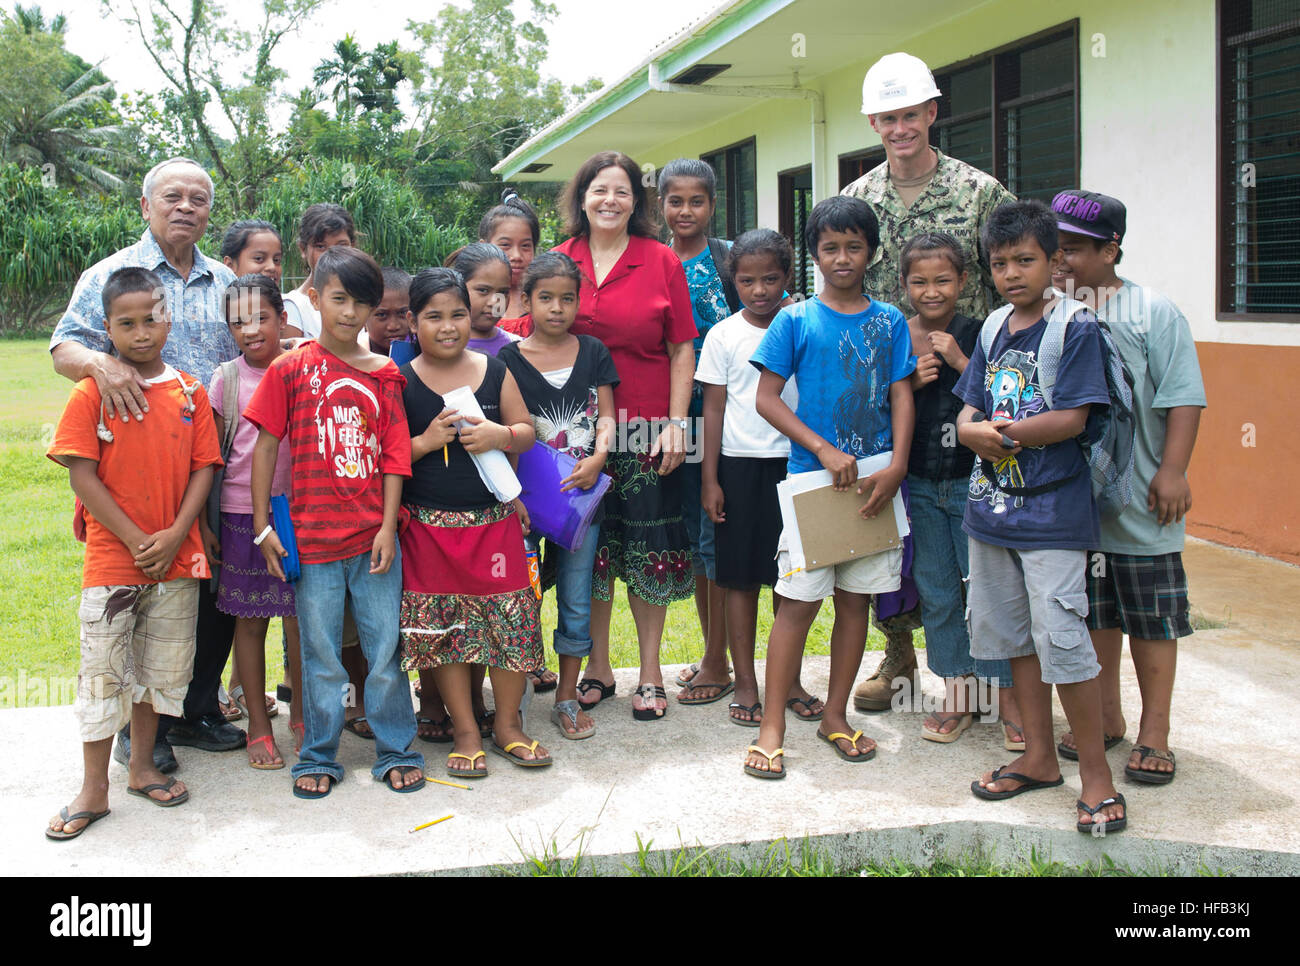 150625-N-RB060-013  POHNPEI (June 25, 2015) - Vice President of the Federated States of Micronesia, Yosiwo George, - Stock Image